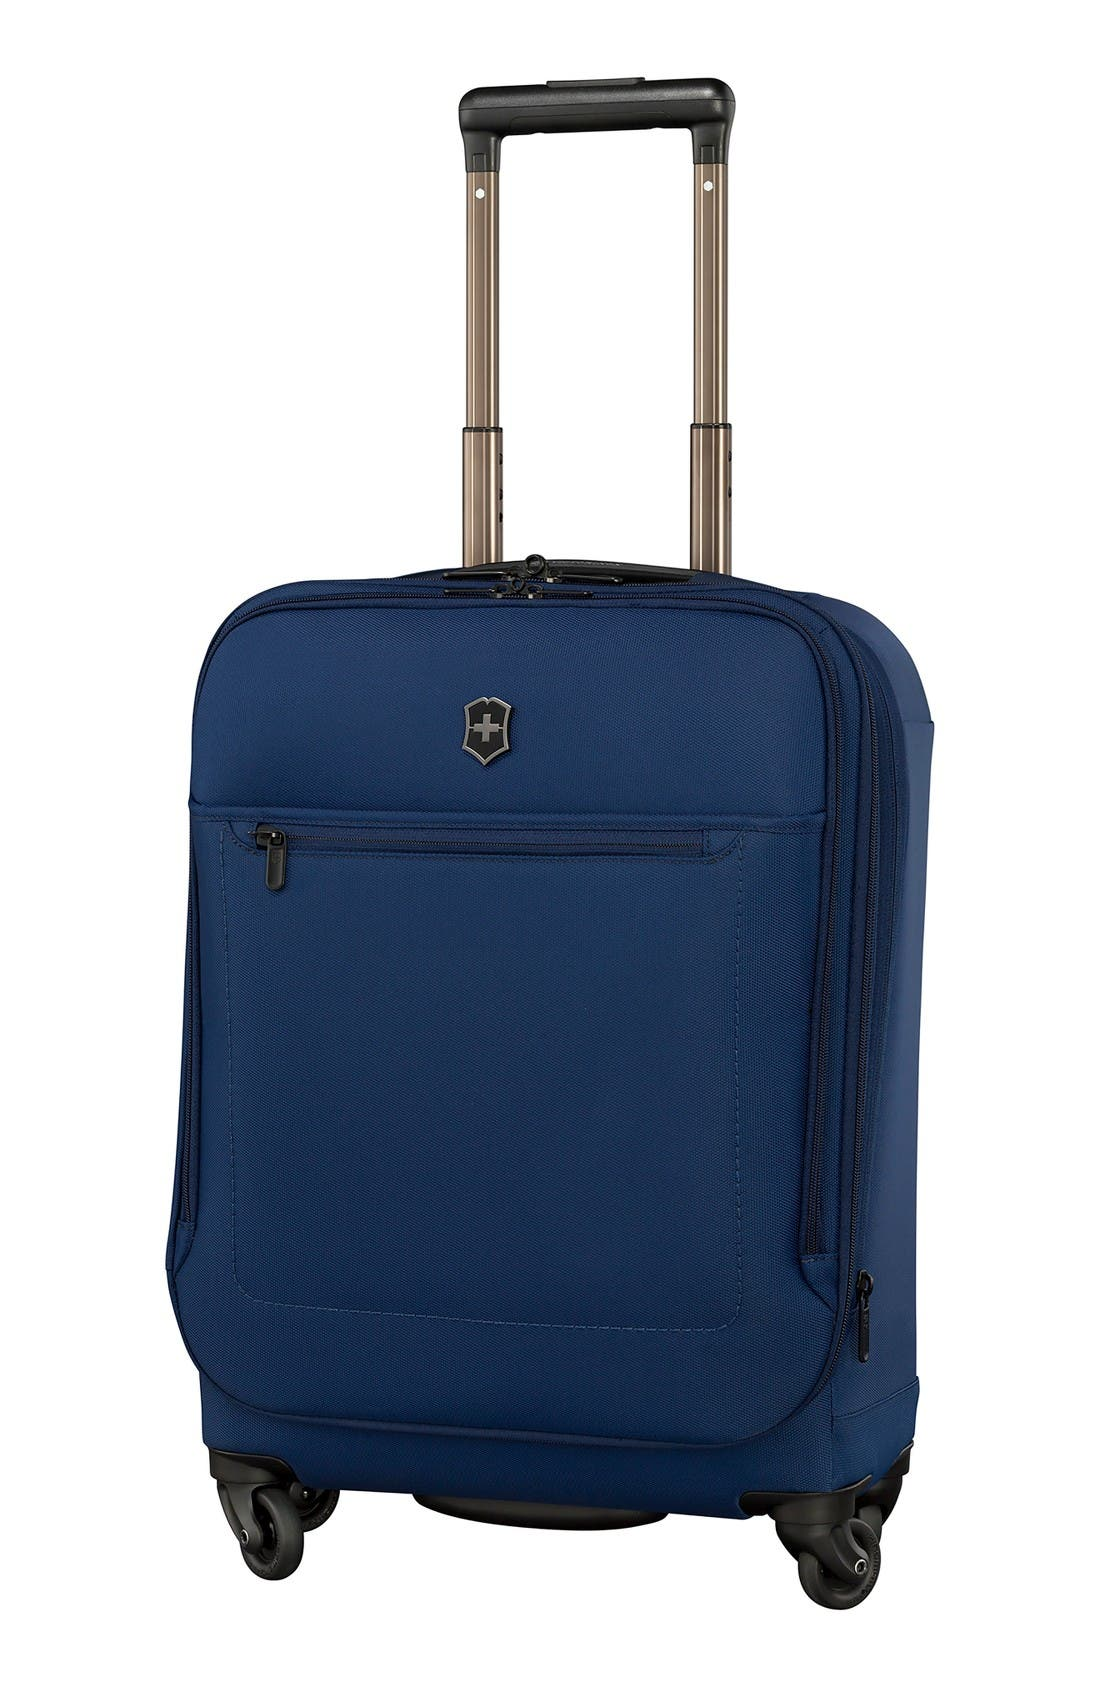 Victorinox Swiss Army® Avolve 3.0 Global 22-Inch Wheeled Carry-On